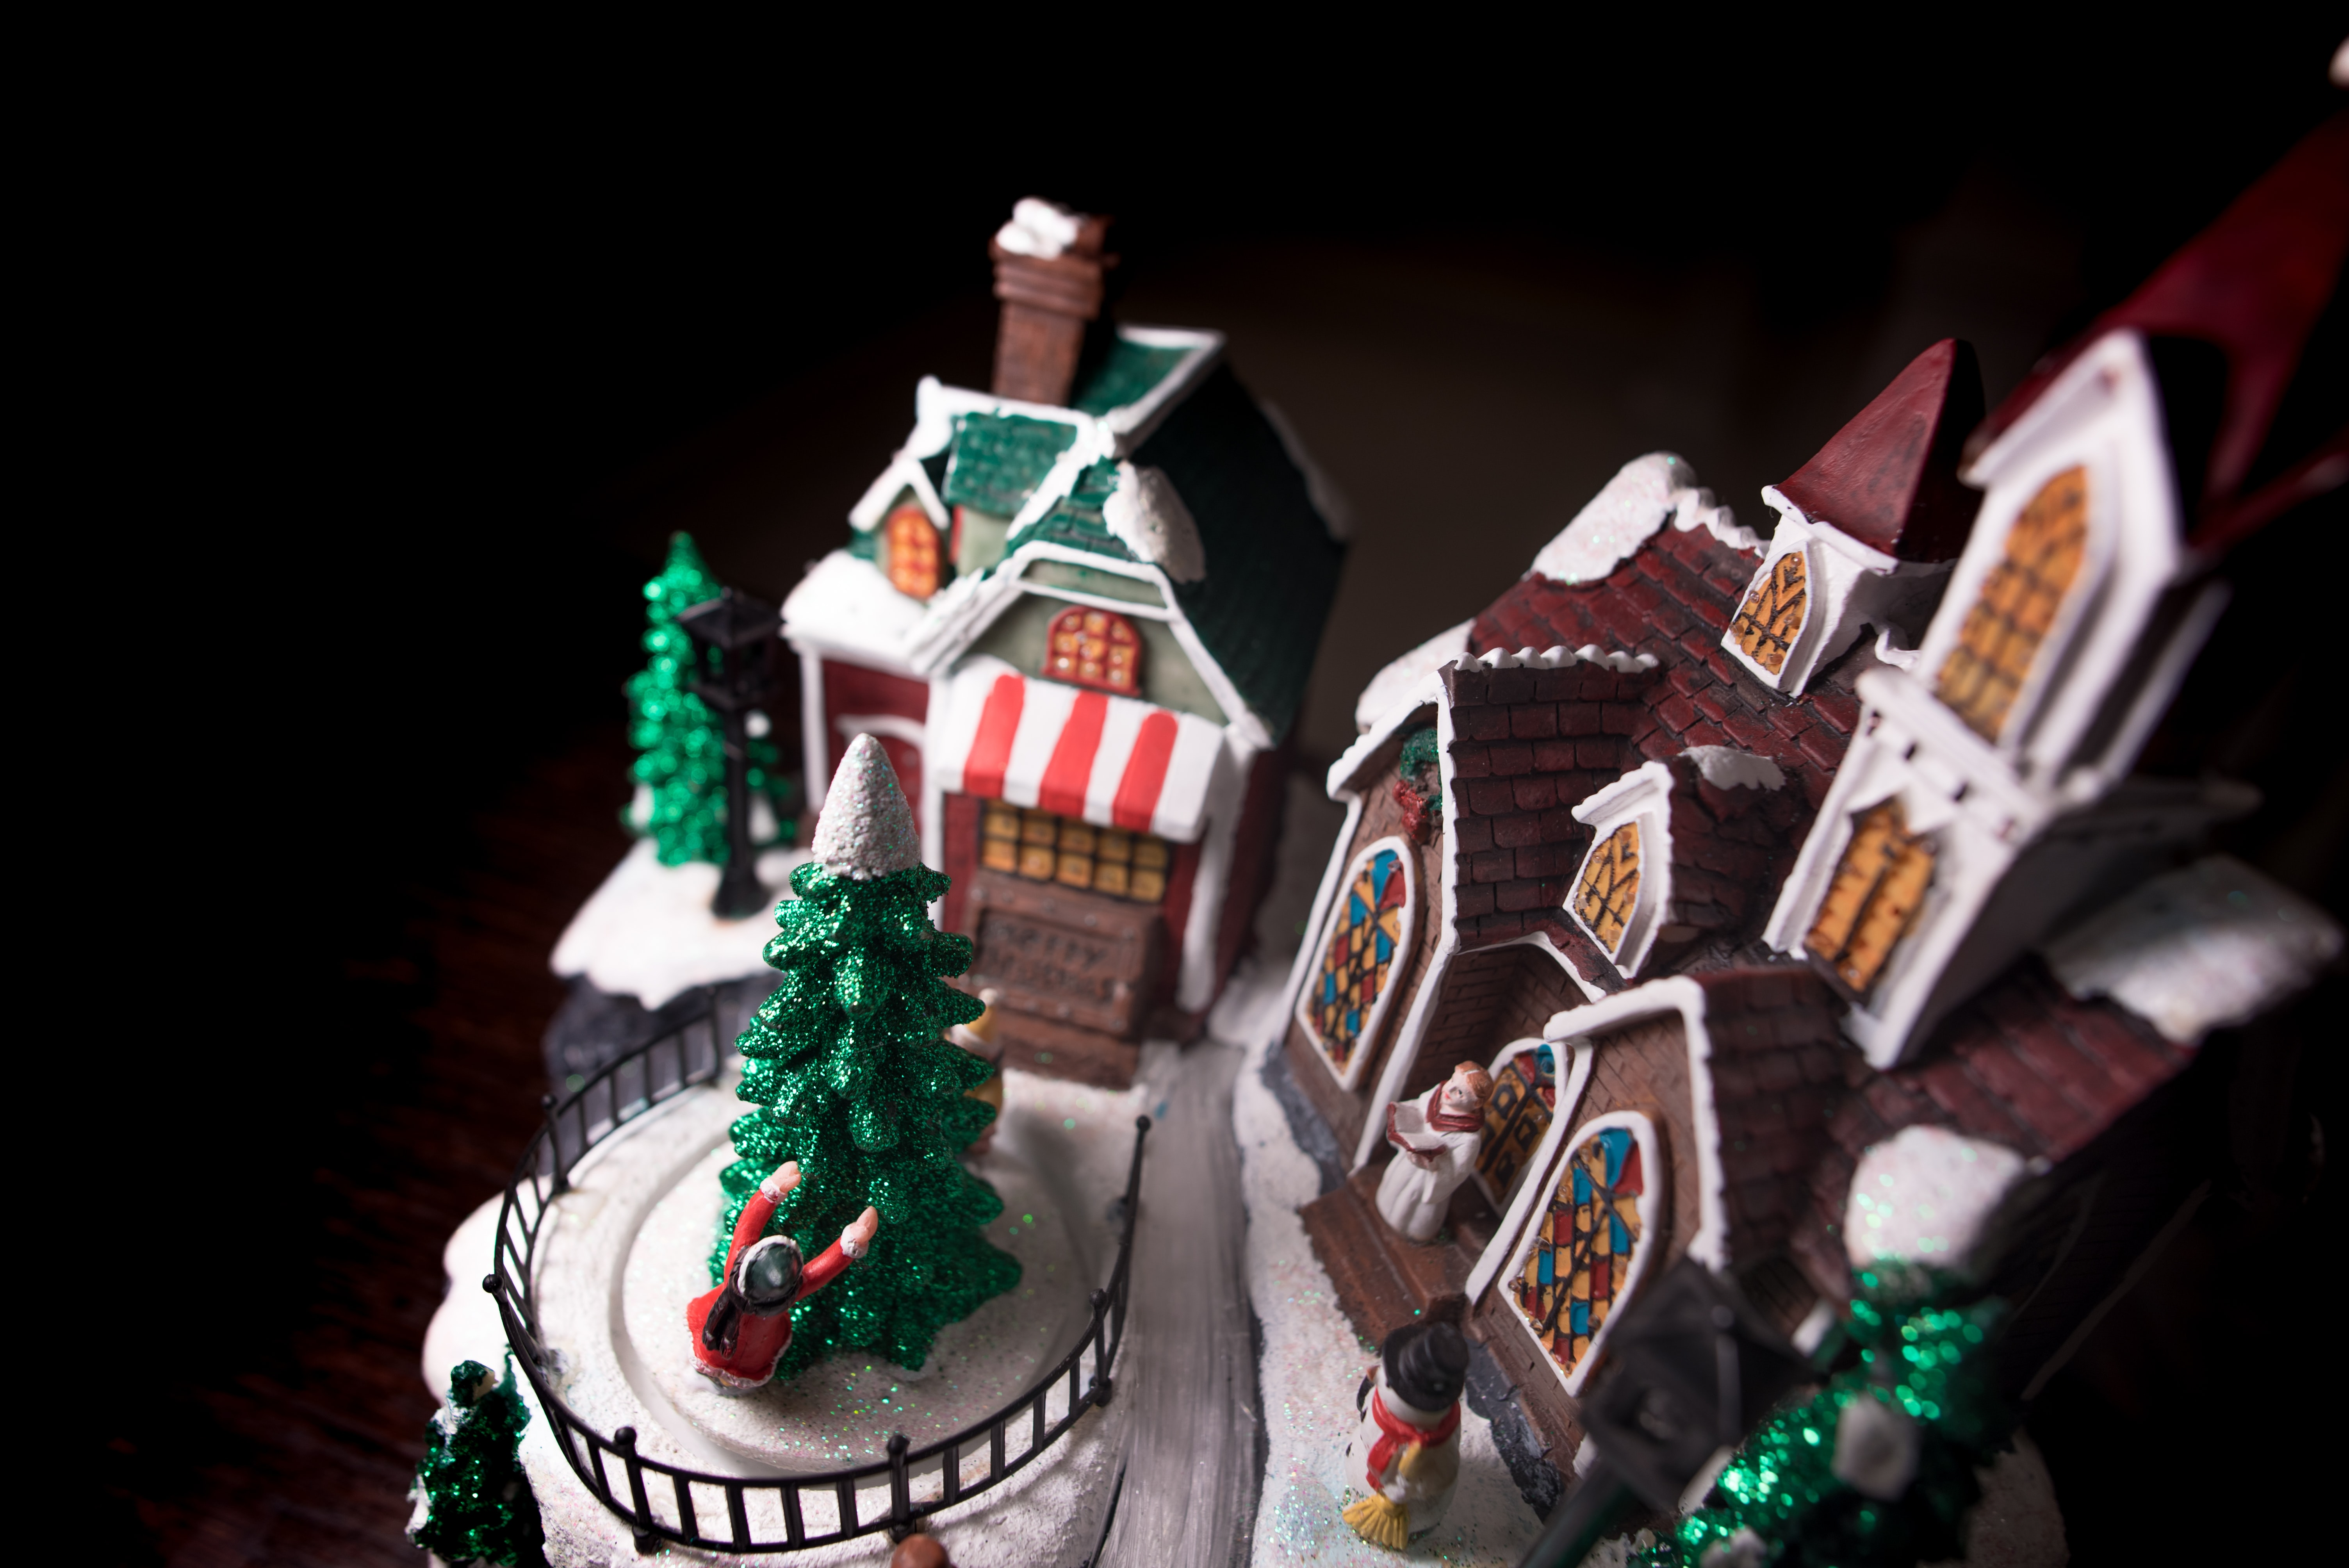 A model of the Christmas holiday replete with church, Christmas tree, snowman, house and people